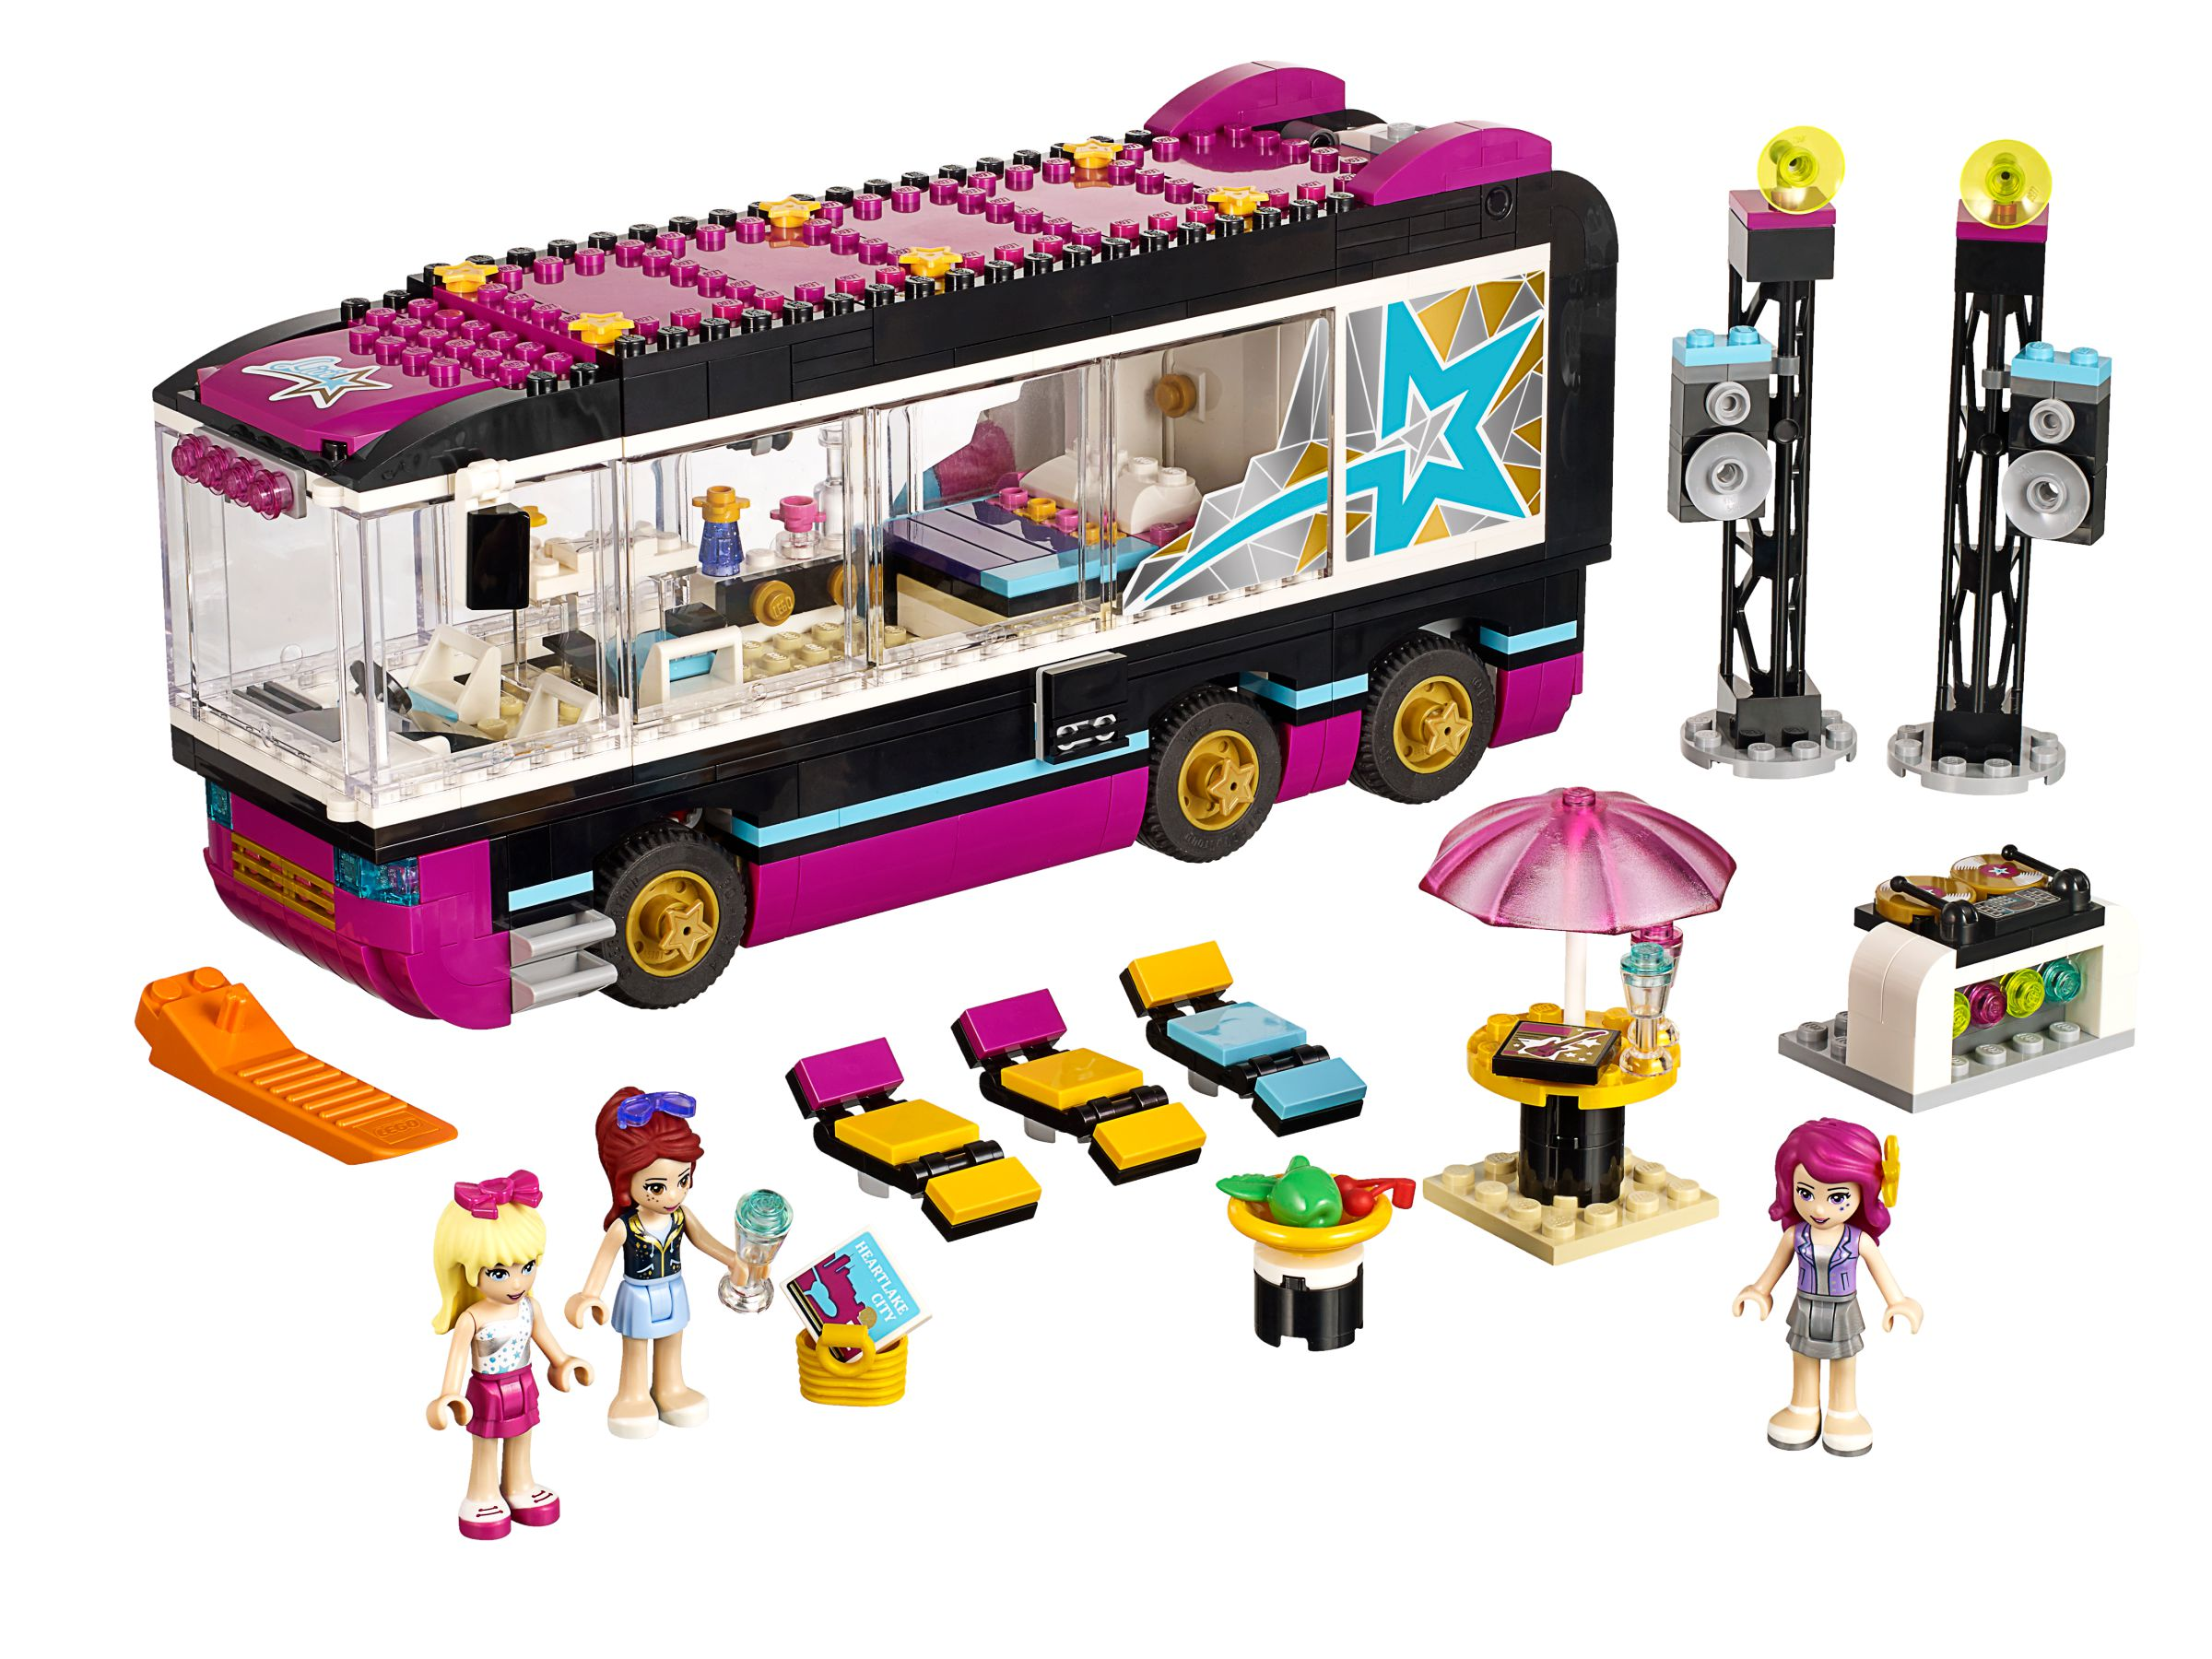 lego 41106 popstar tourbus friends 2015 pop star tour bus brickmerge. Black Bedroom Furniture Sets. Home Design Ideas